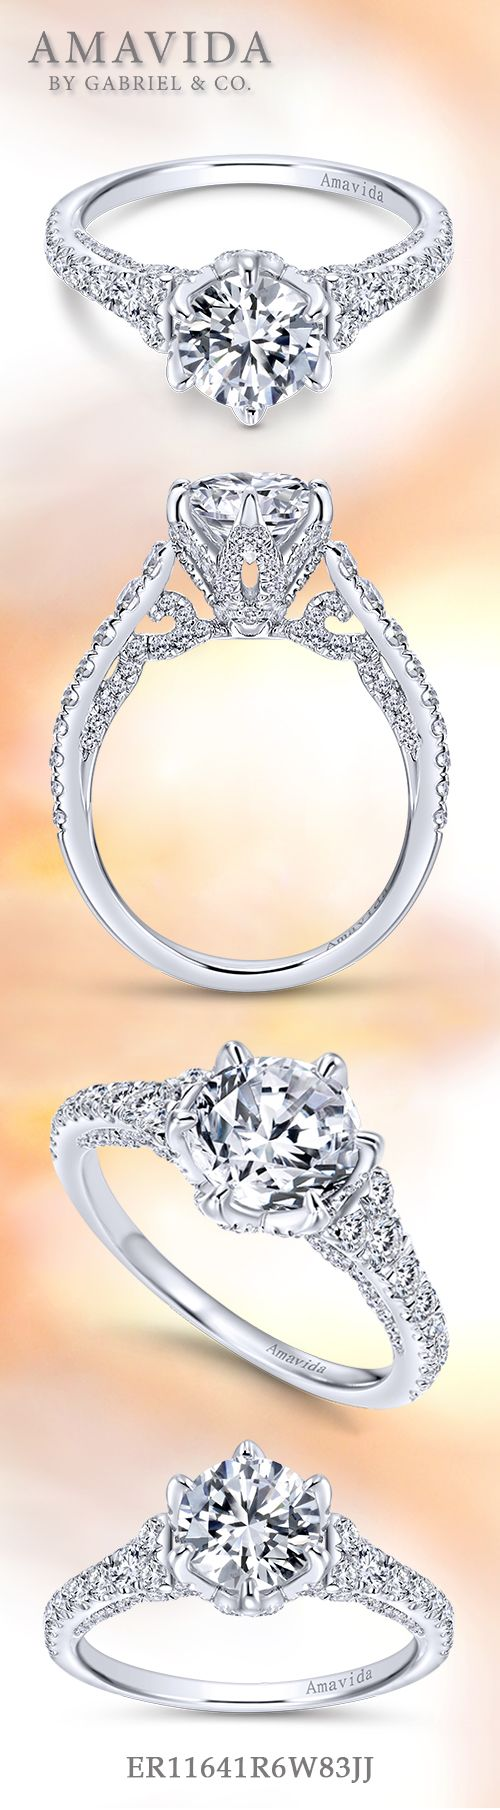 Amavida by Gabriel & Co. - Voted #1 Most Preferred Bridal Brand. This alluring engagement ring includes a reverse tapered band, adorned with pave diamonds that gives it a vintage-esque look.